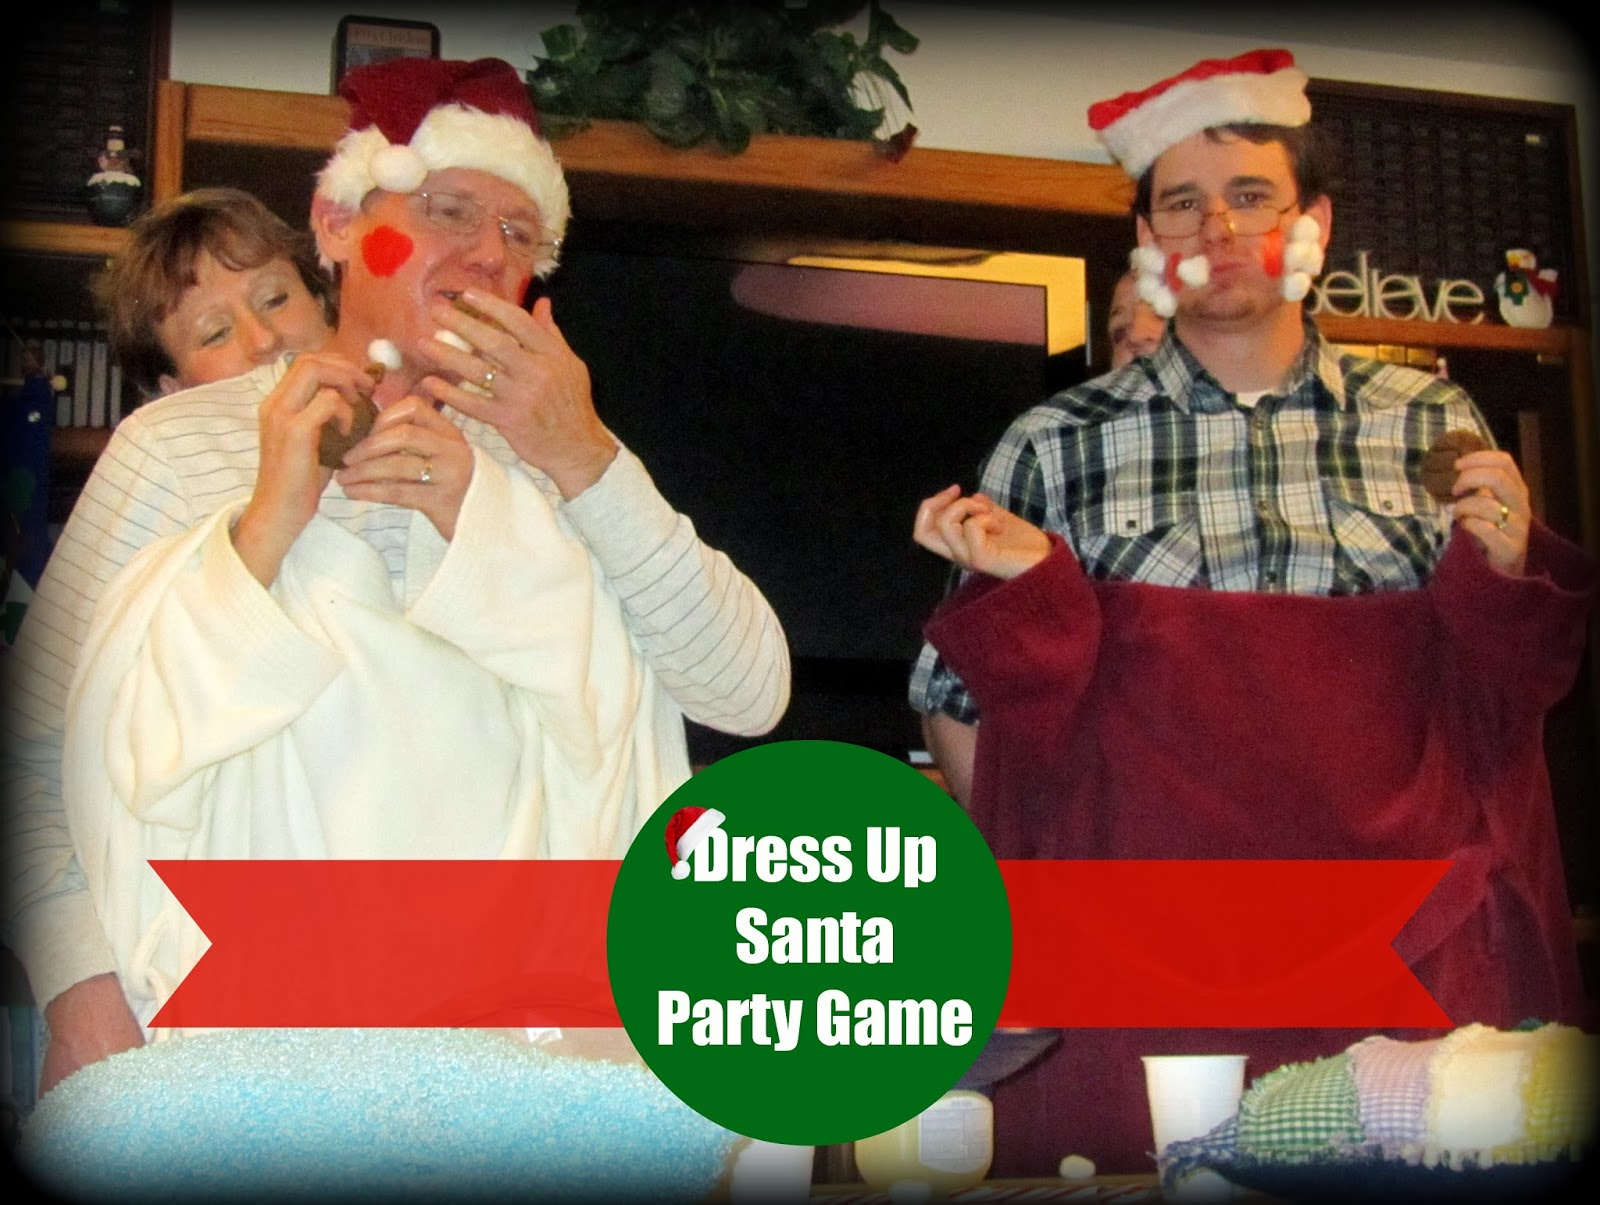 Dress up xmas party - I Always Like To Have A Party Game That S A Little Silly Crazy I Also Like To Tease My Dad Whenever I Can Because I Love Him So This Year I Came Up